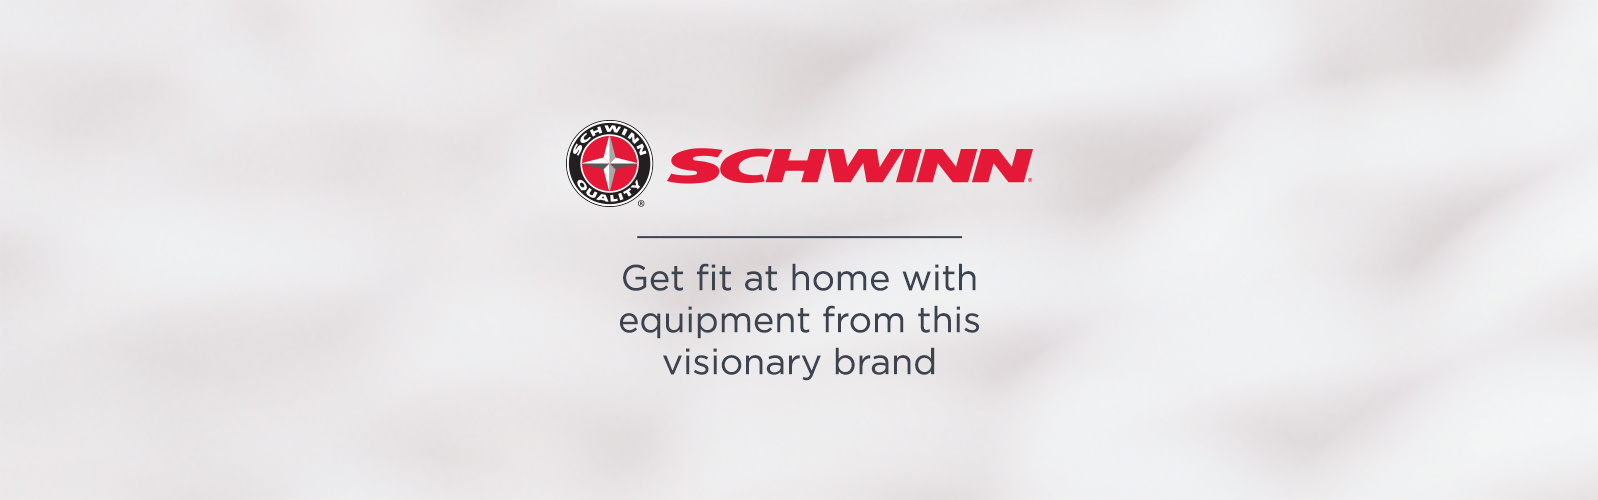 Schwinn — Get fit at home with equipment from this visionary brand